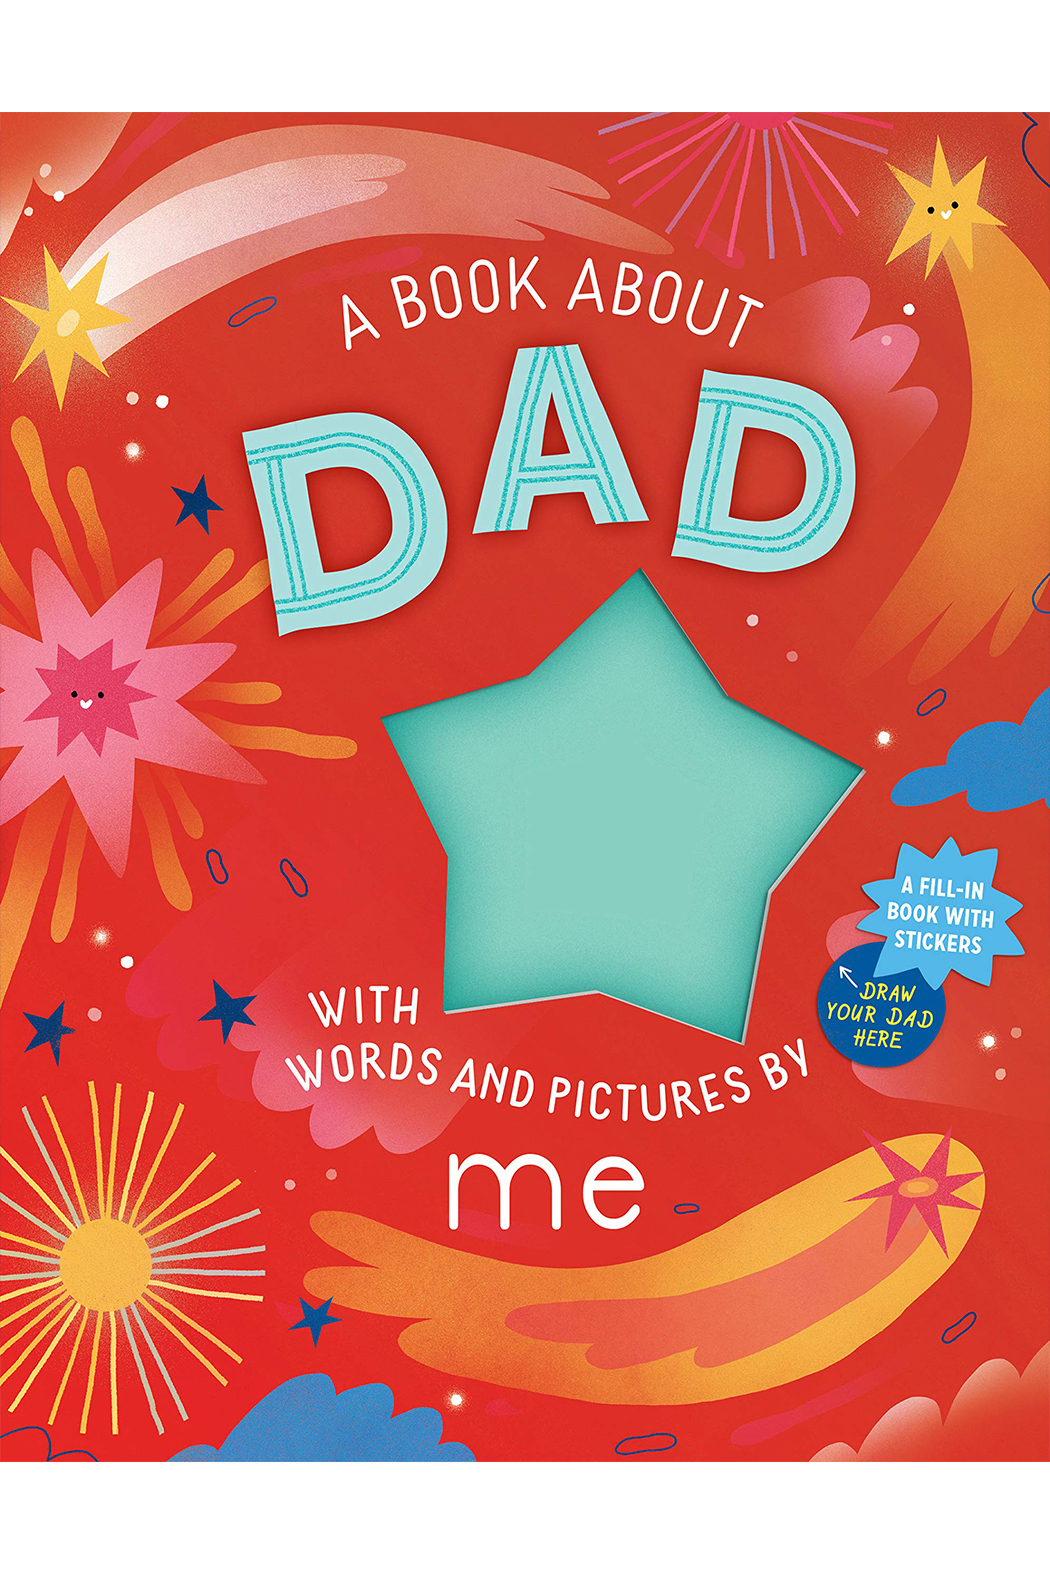 Workman Publishing A Book About Dad With Words And Pictures By Me - Main Image